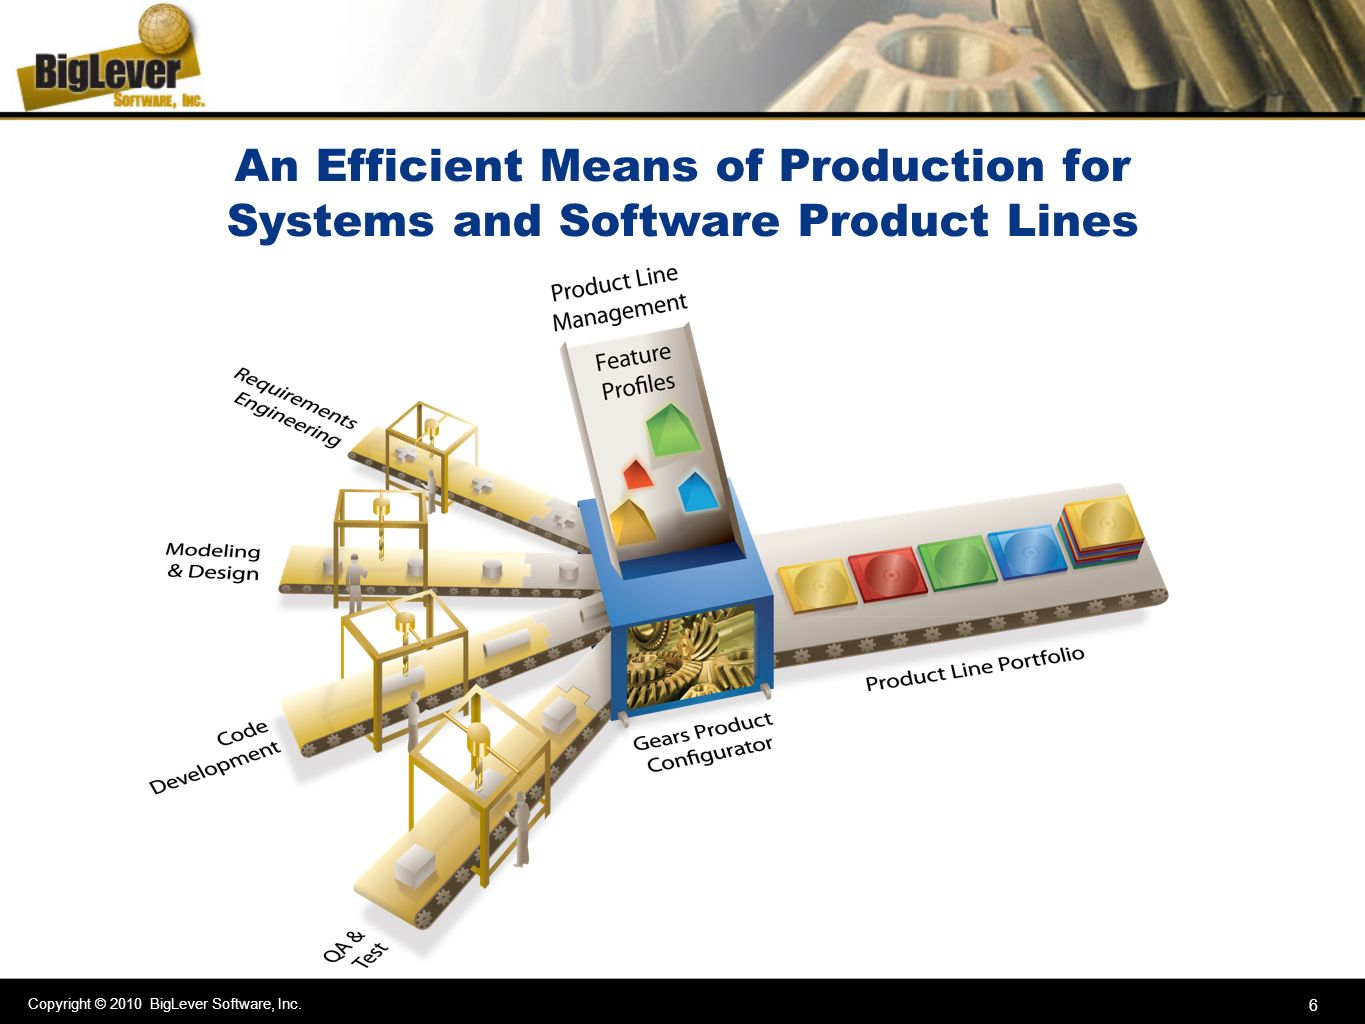 An Efficient Means of Production for Systems and Software Product Lines